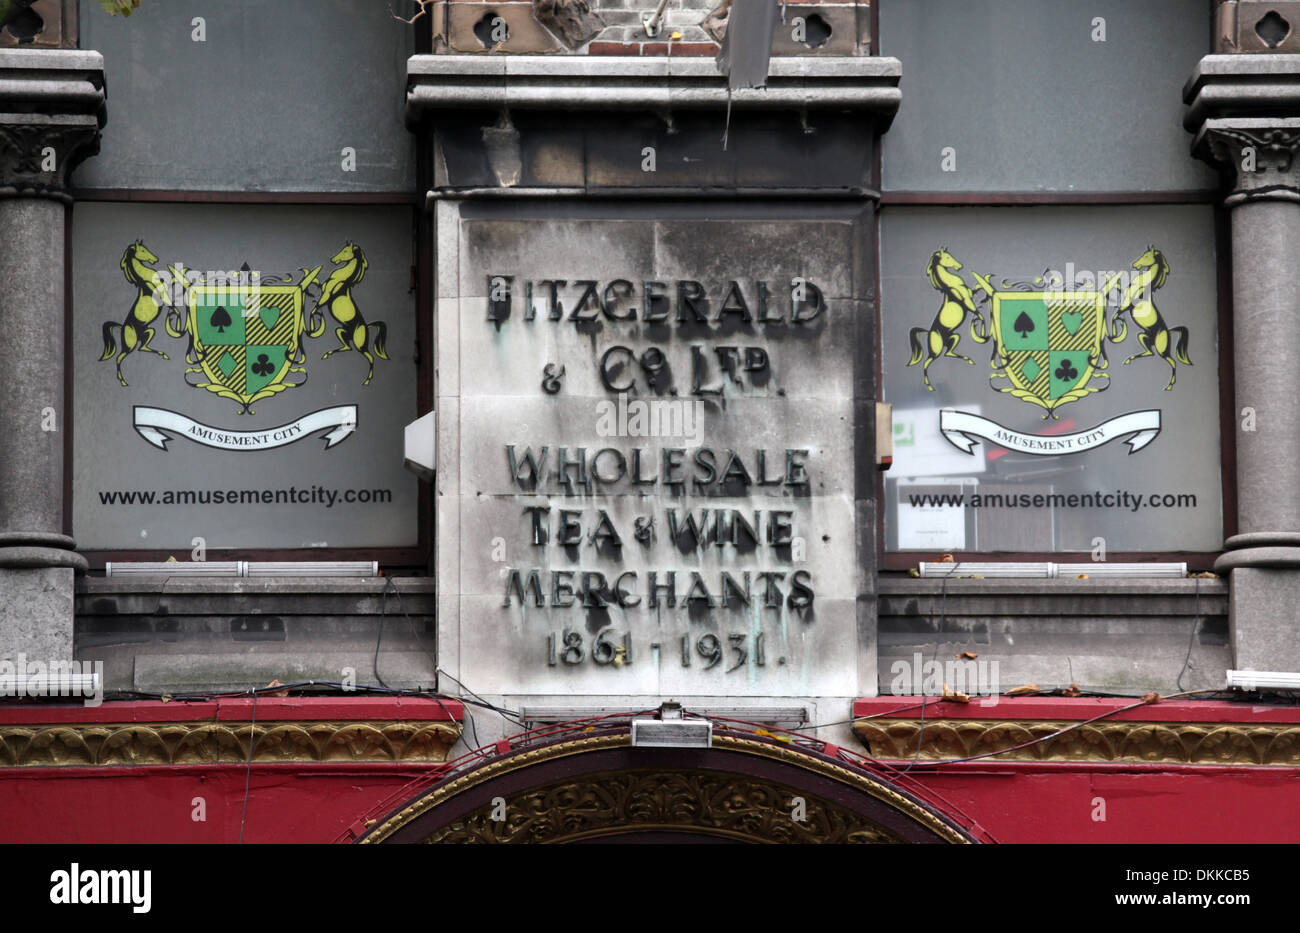 Fitzgerald and Co Ltd Sign in Dublin Stock Photo